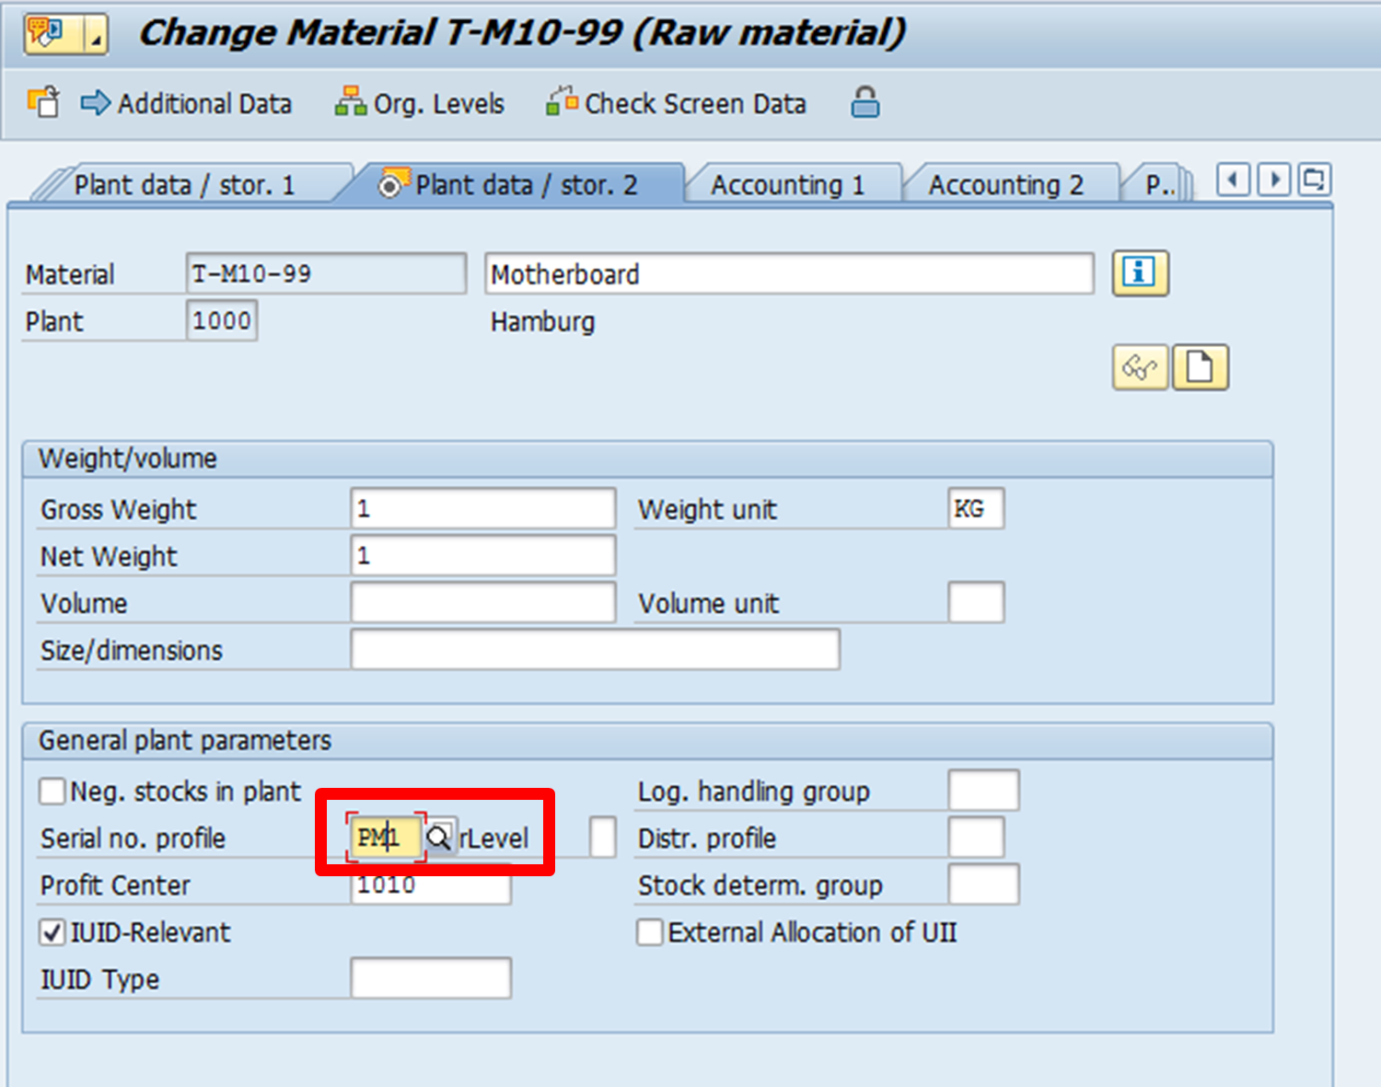 SAP Material Master: Enter Serial Number Profile